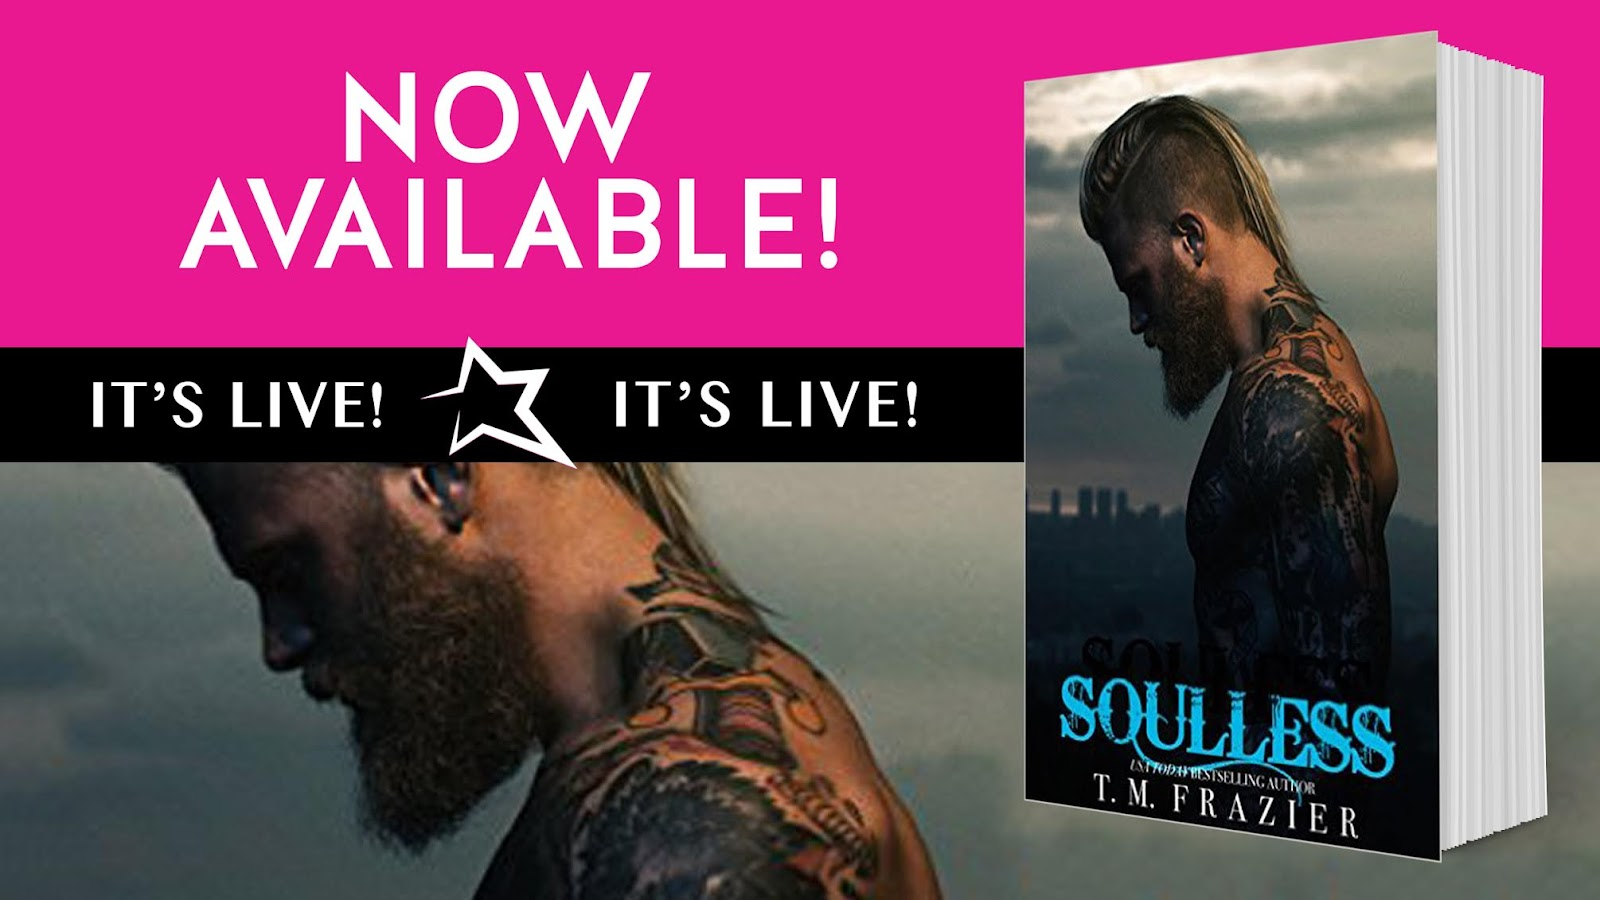 soulless now available.jpg